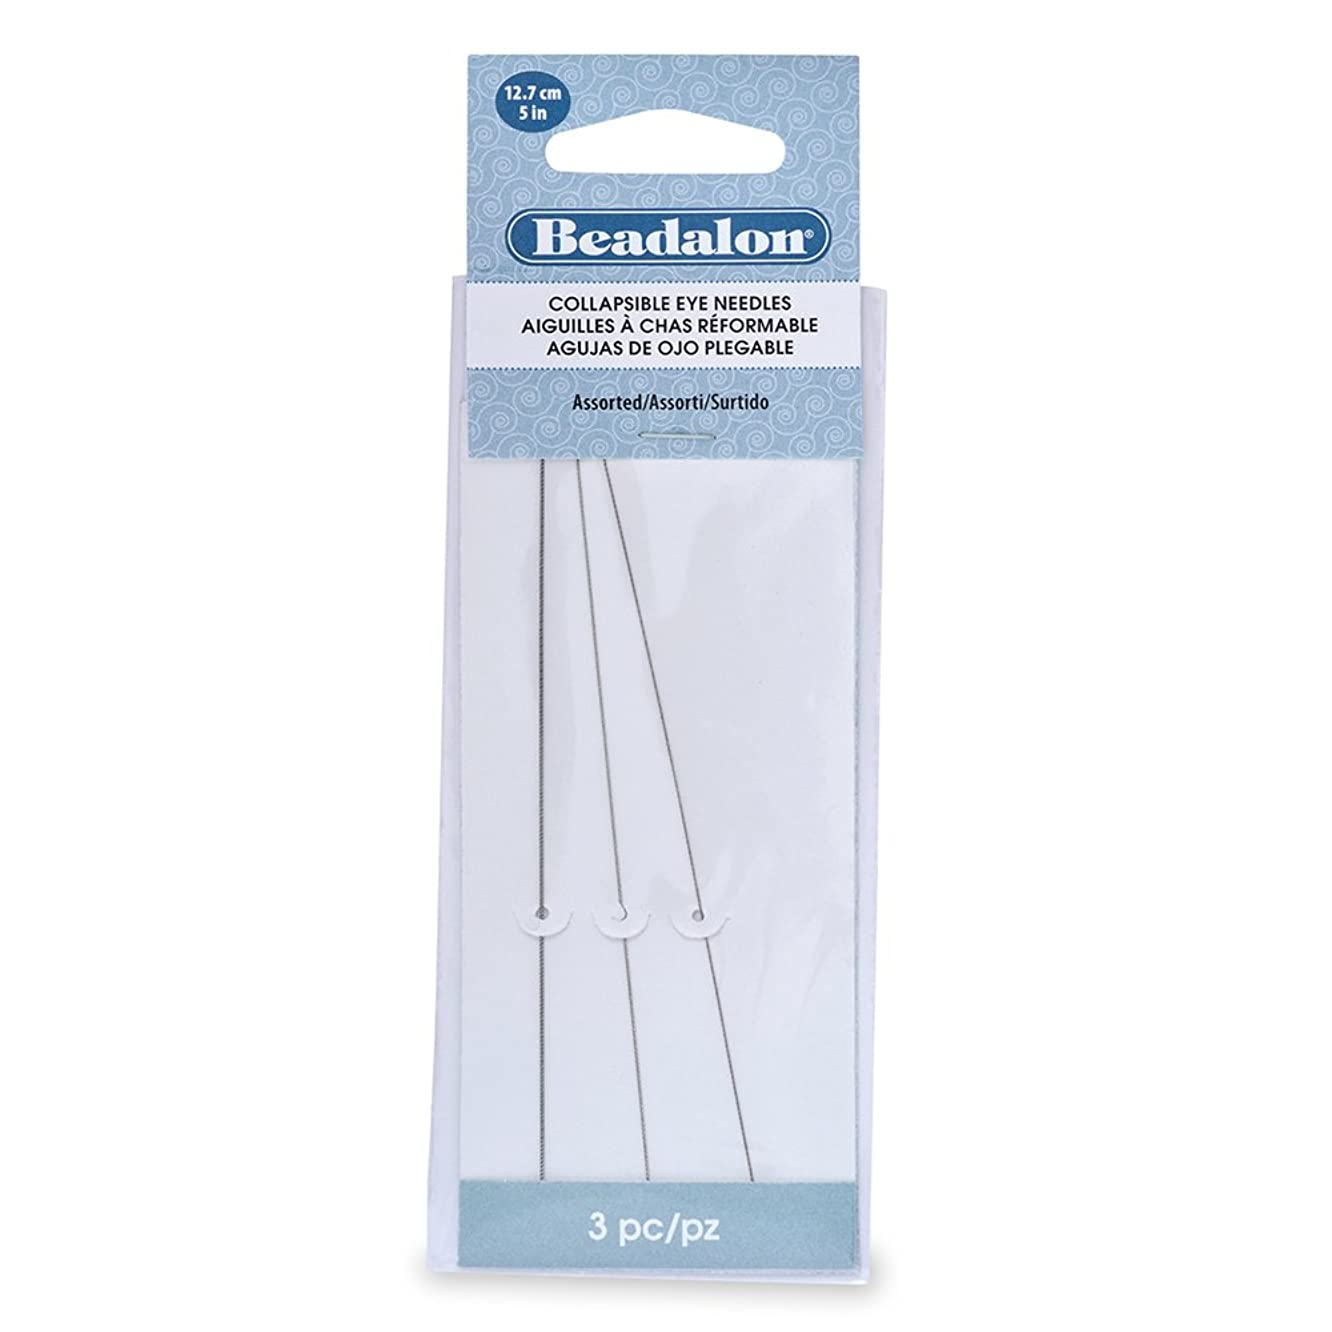 Artistic Wire Beadalon Collapsible Eye Needles Assorted 5-Inch 3 Pieces